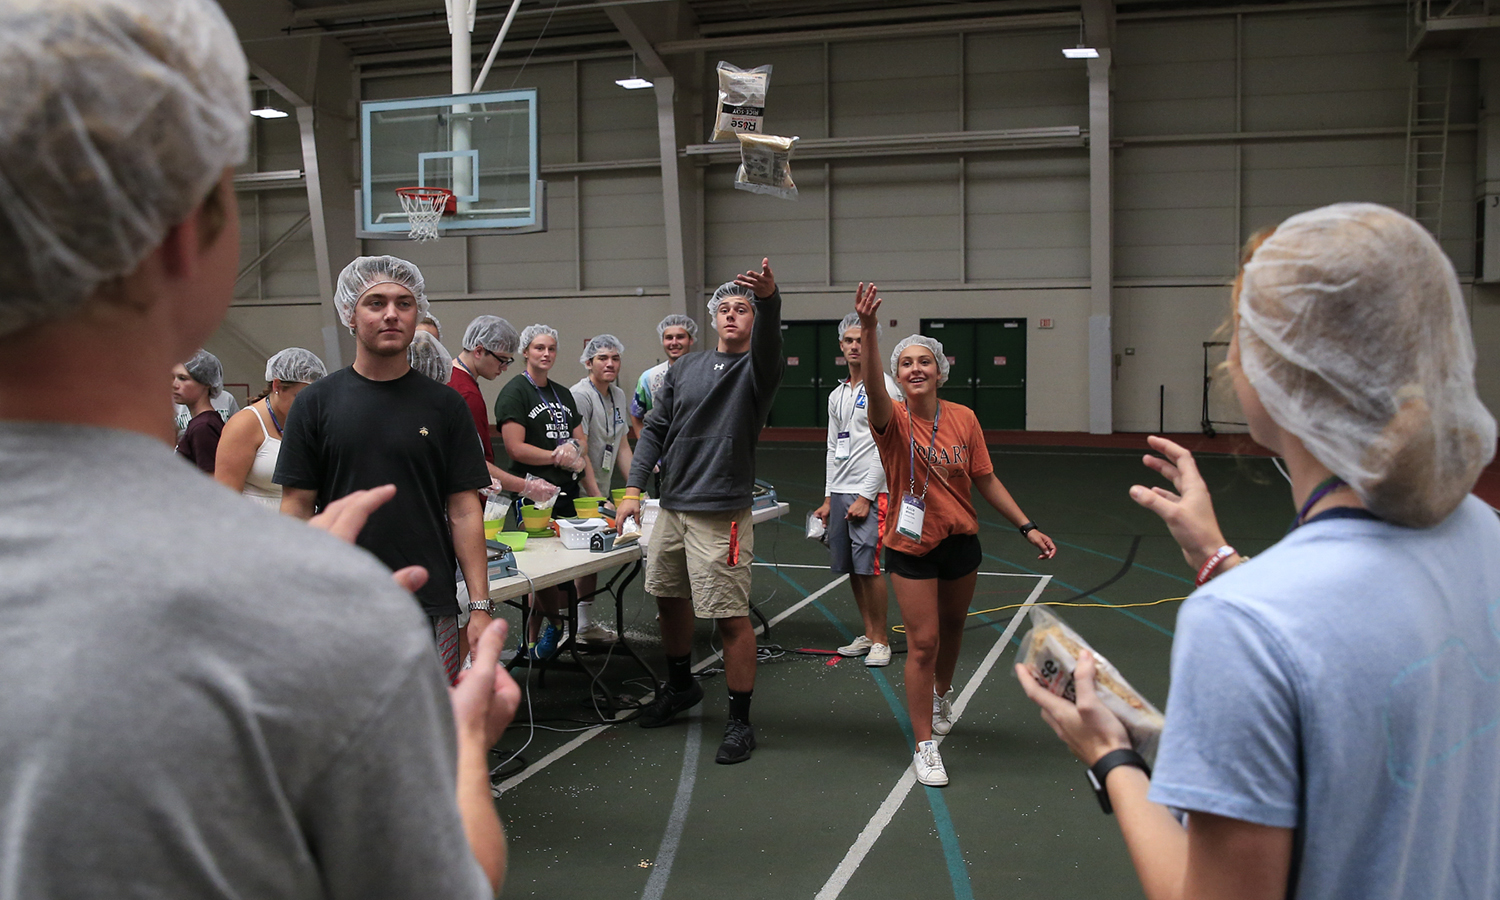 First-year students pass meal packages along an assembly line at Bristol Field House during the 2018 Day of Service.